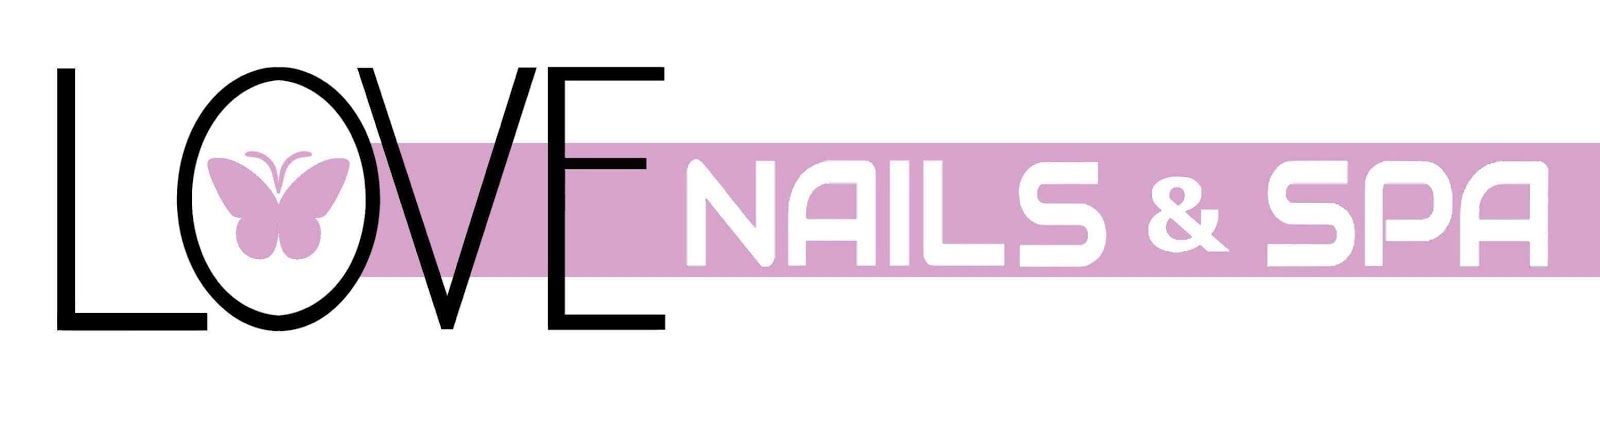 Nail salon 45069 | Love Nails and Spa | West Chester, Township, OH 45069